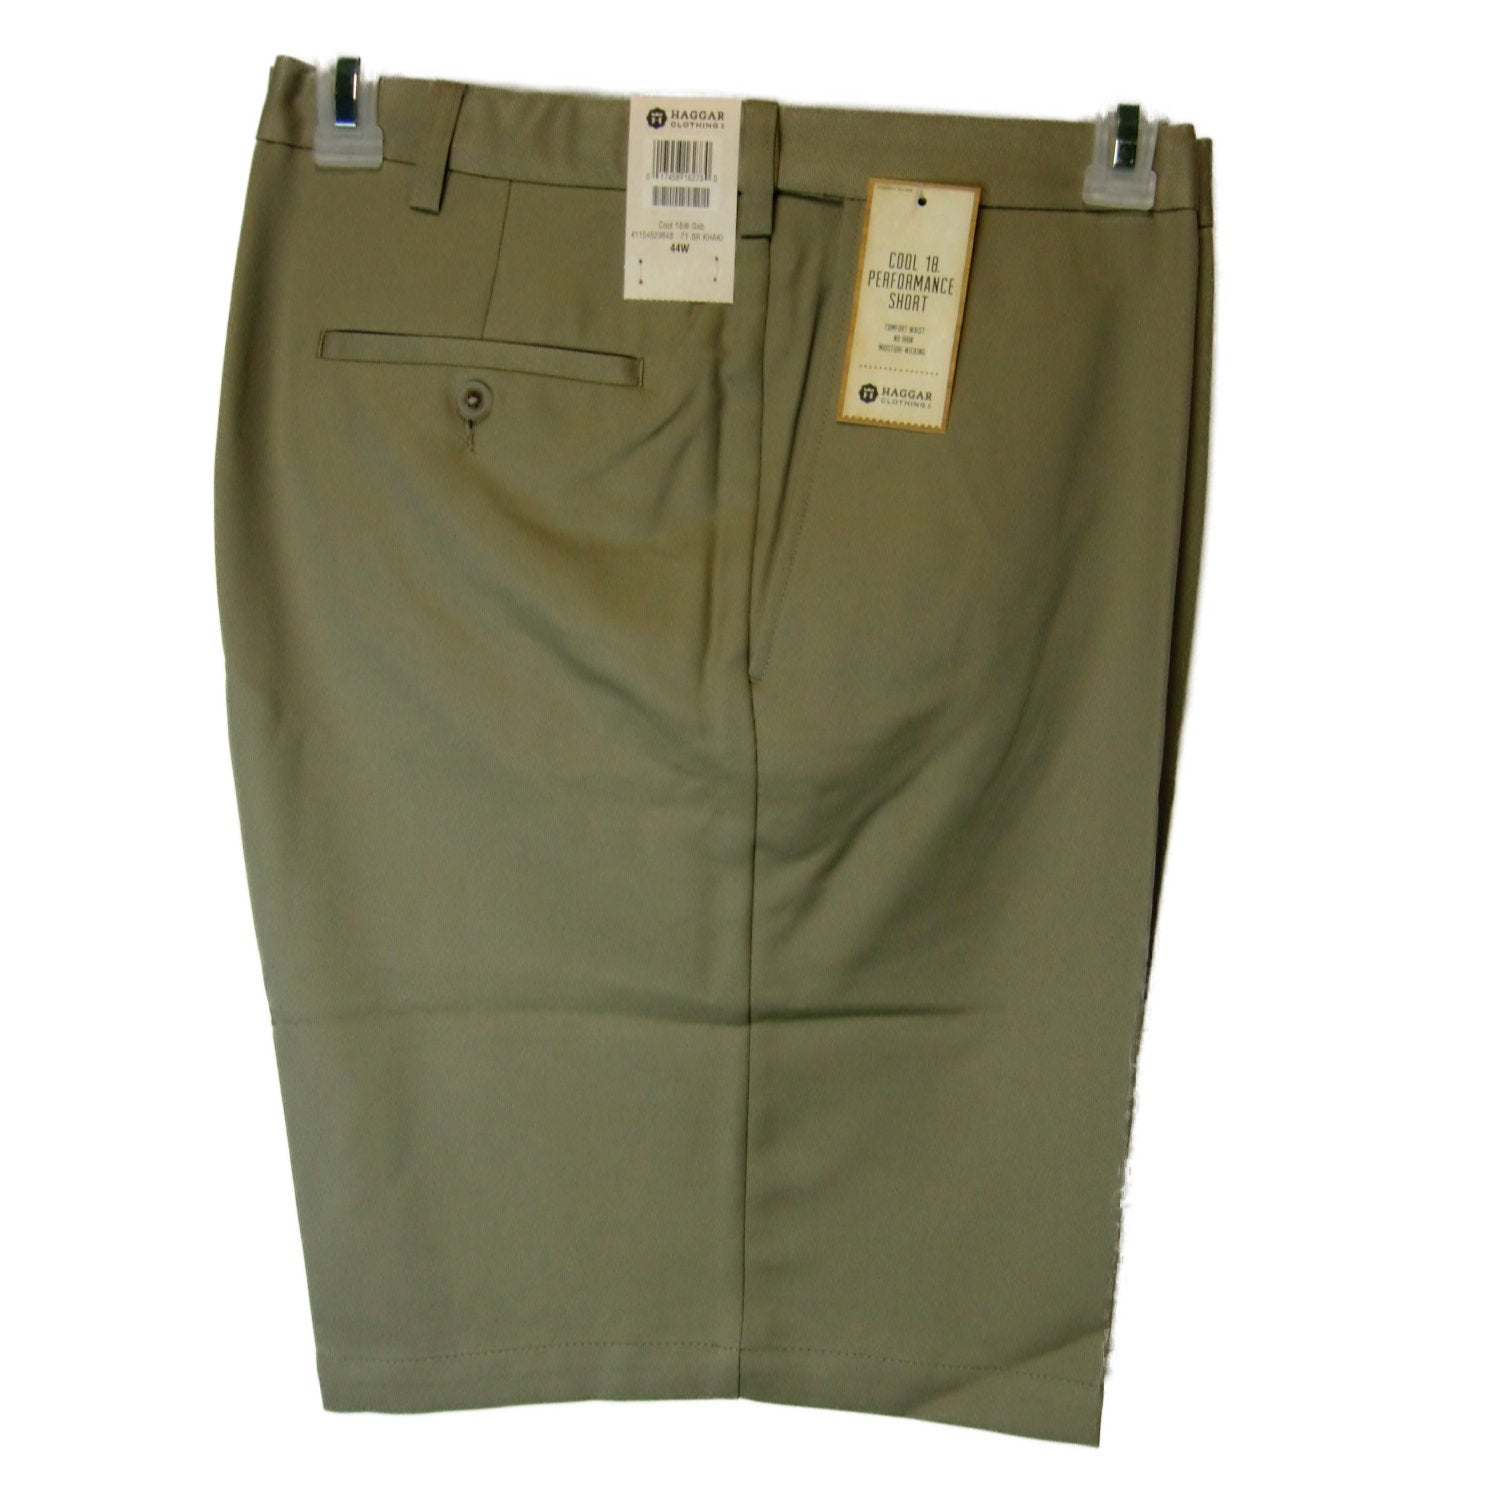 new Haggar man's tan shorts